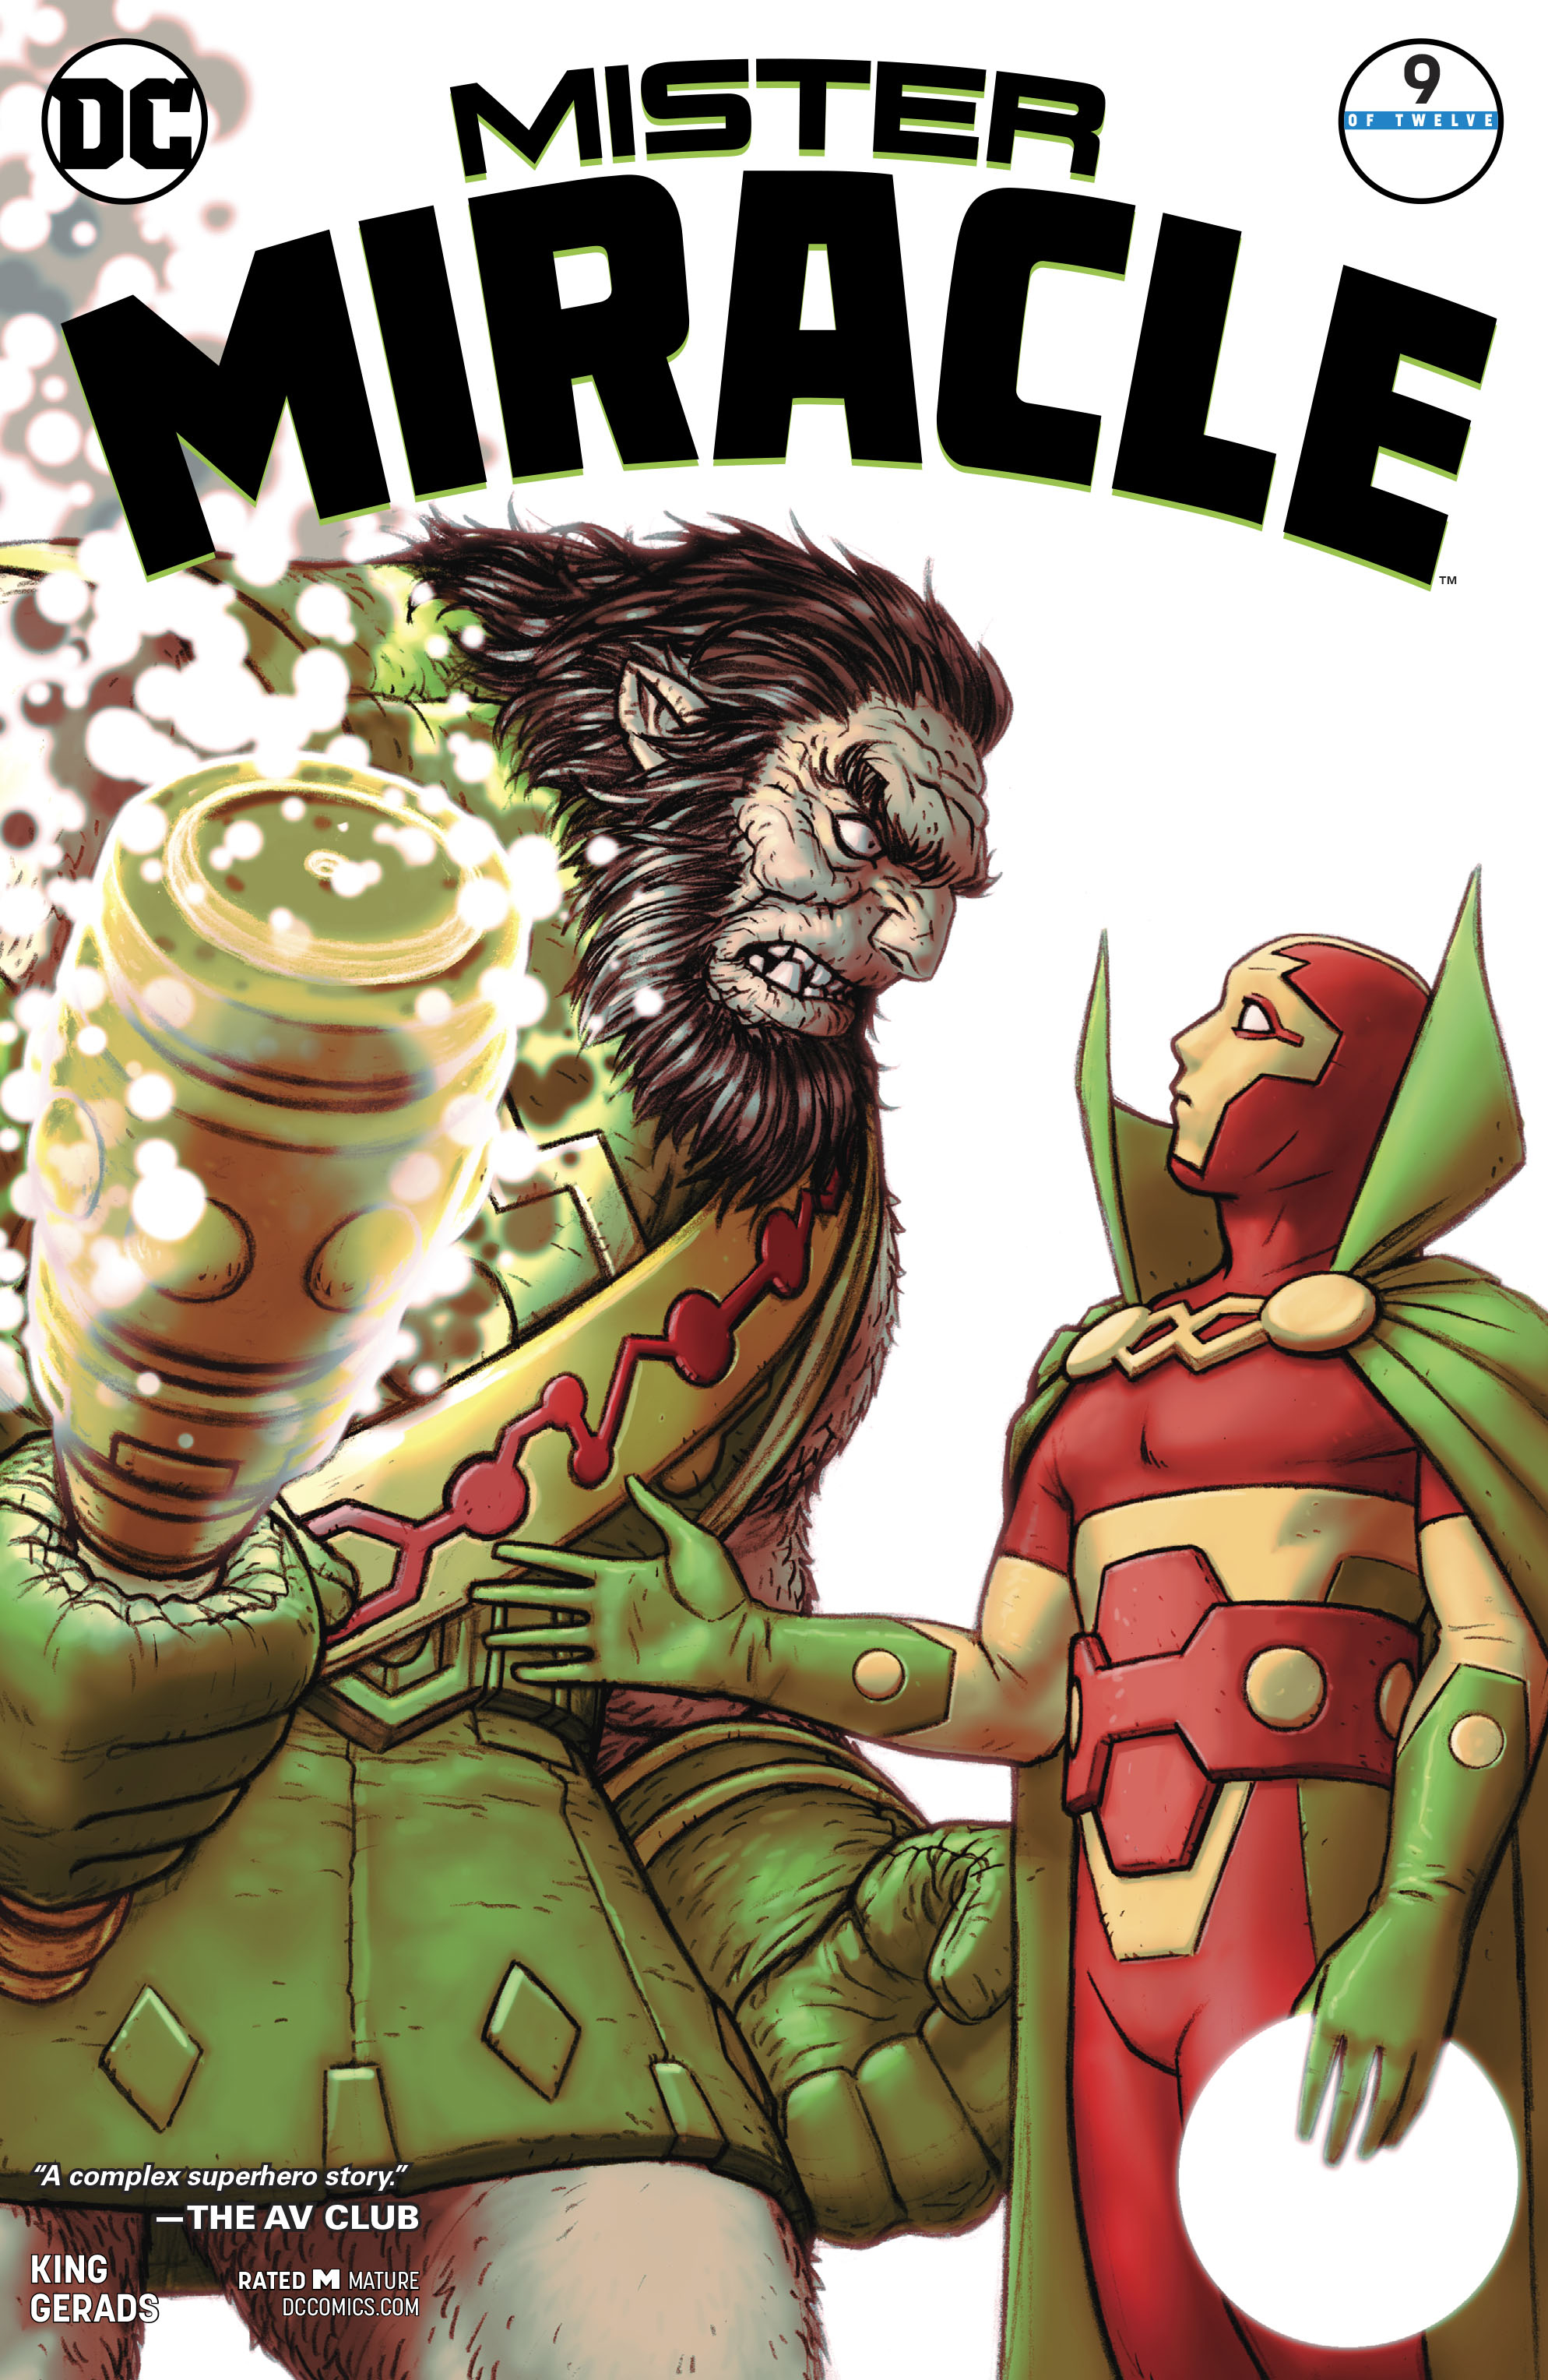 MISTER MIRACLE #9 (OF 12) (MR)